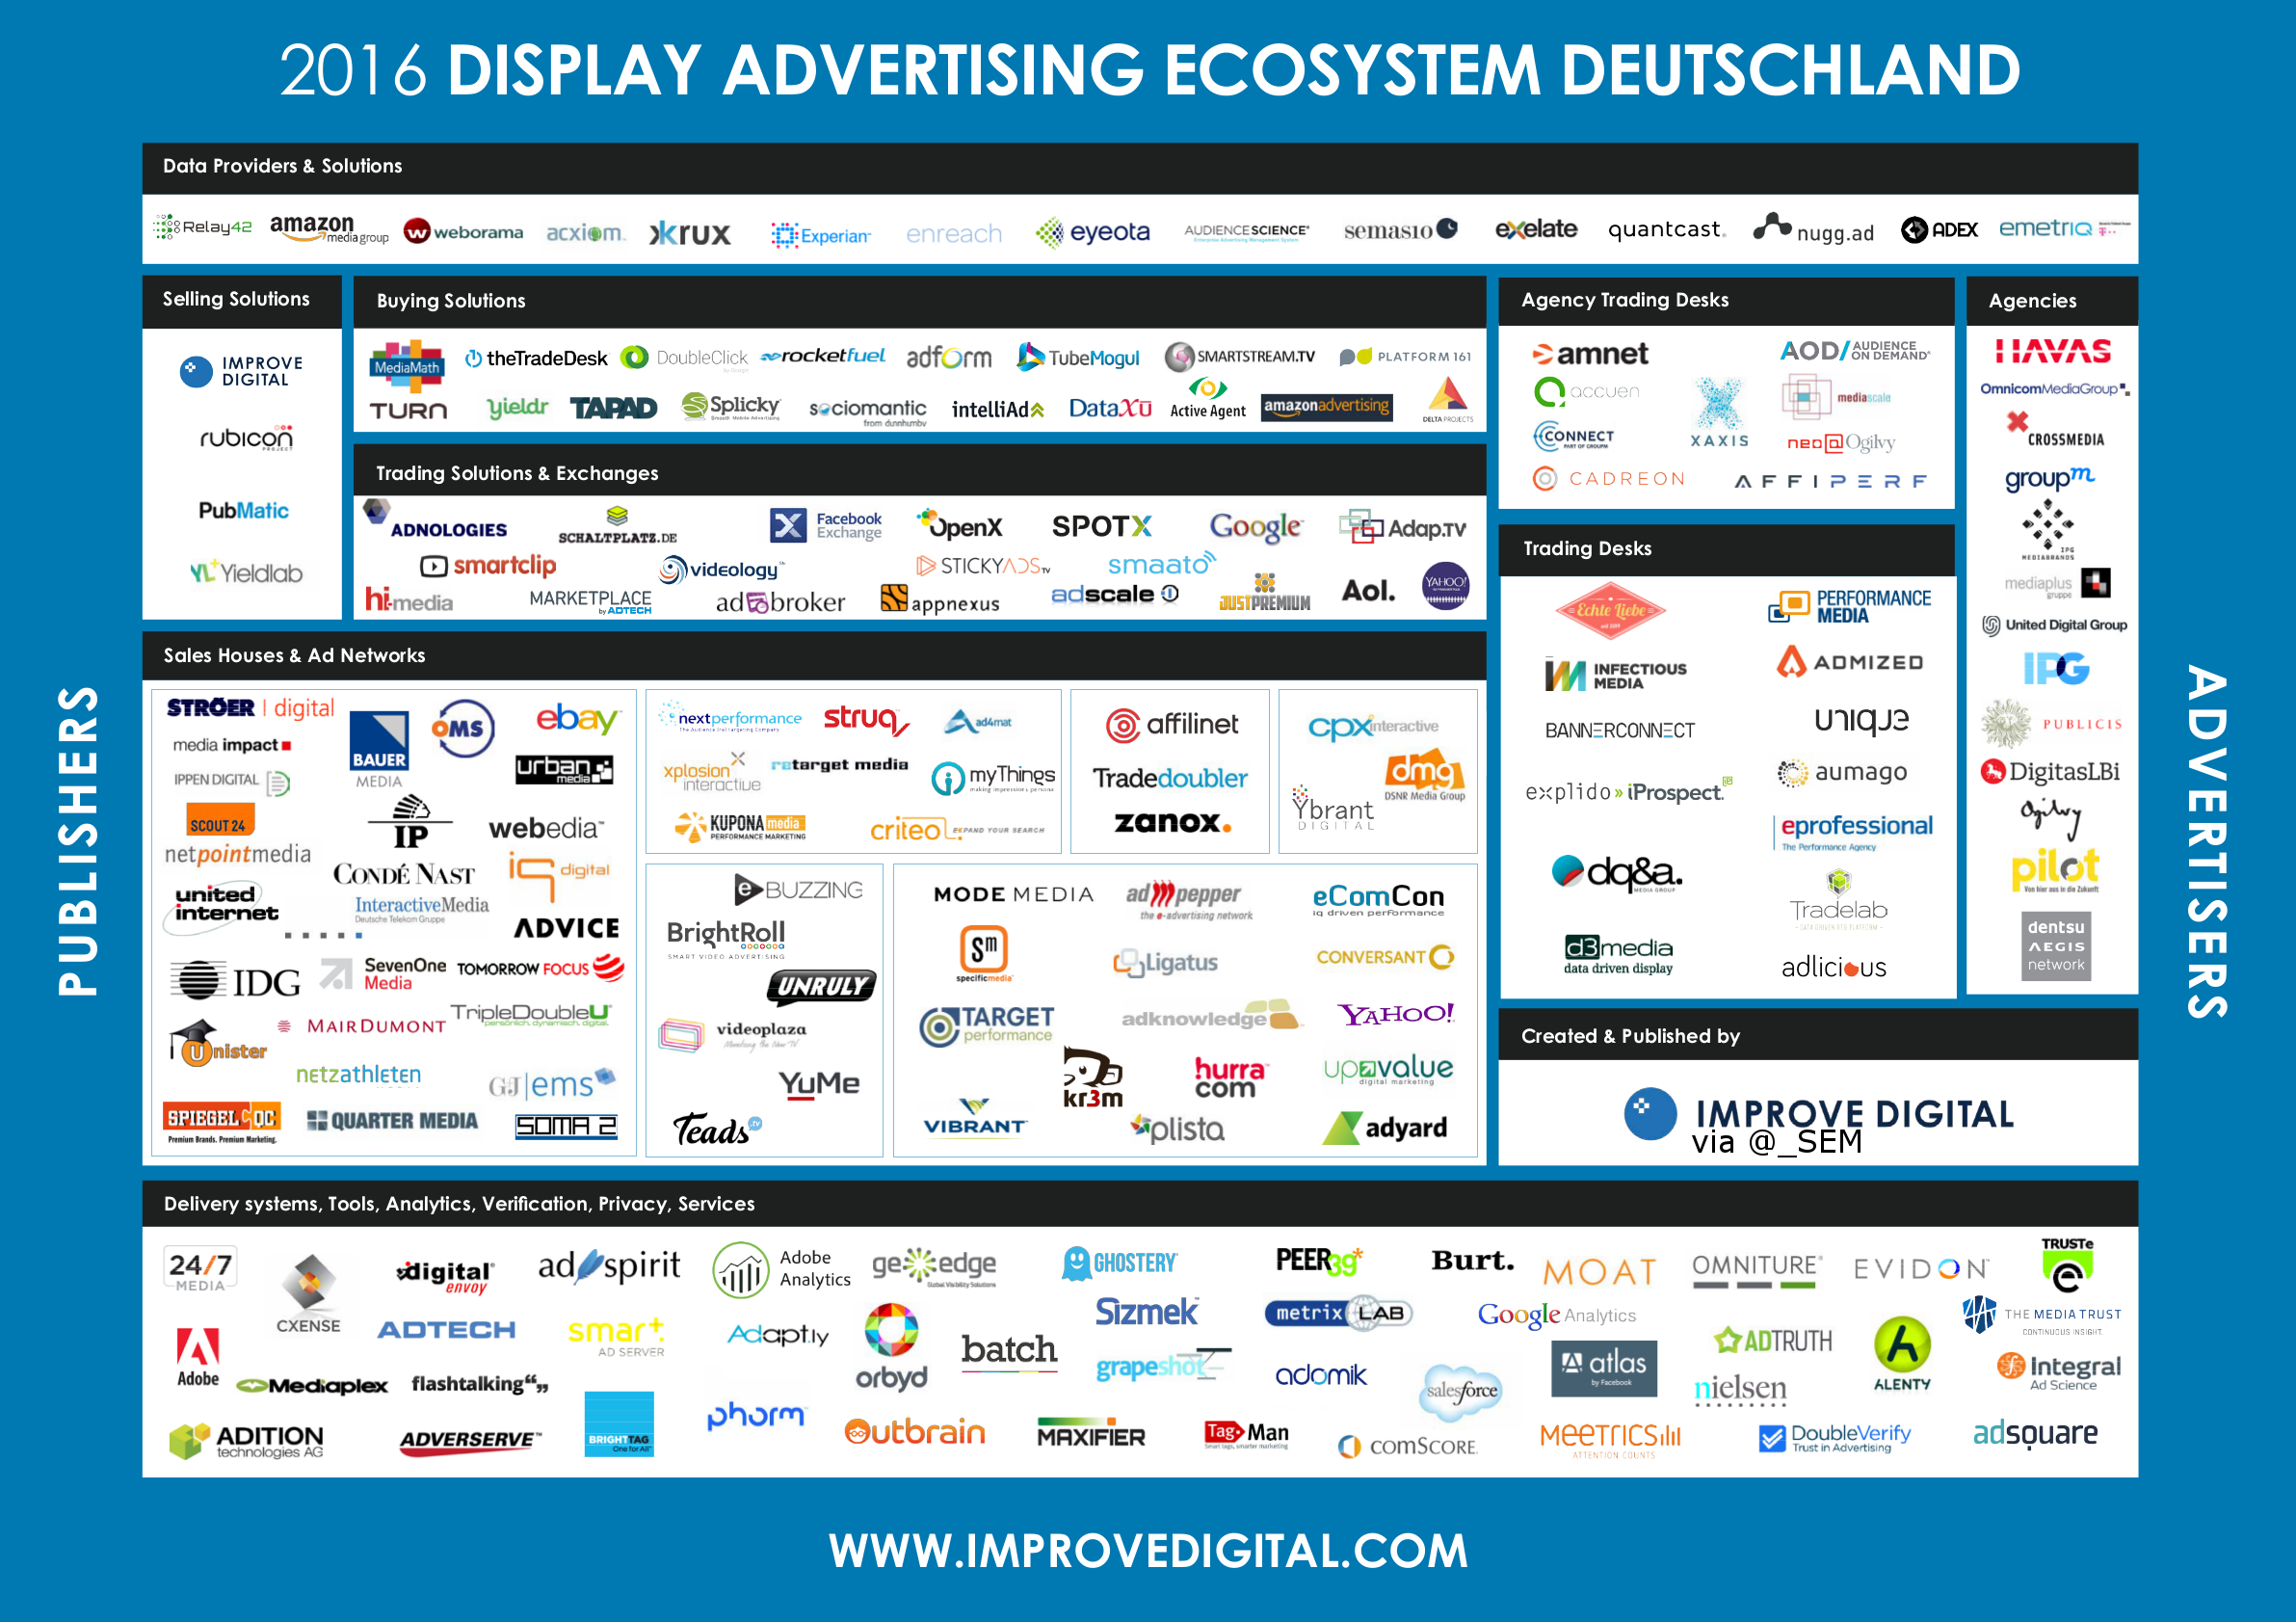 DE VIDEO & DISPLAY ADVERTISING ECOSYSTEM 2016 -- Market Map Germany ...